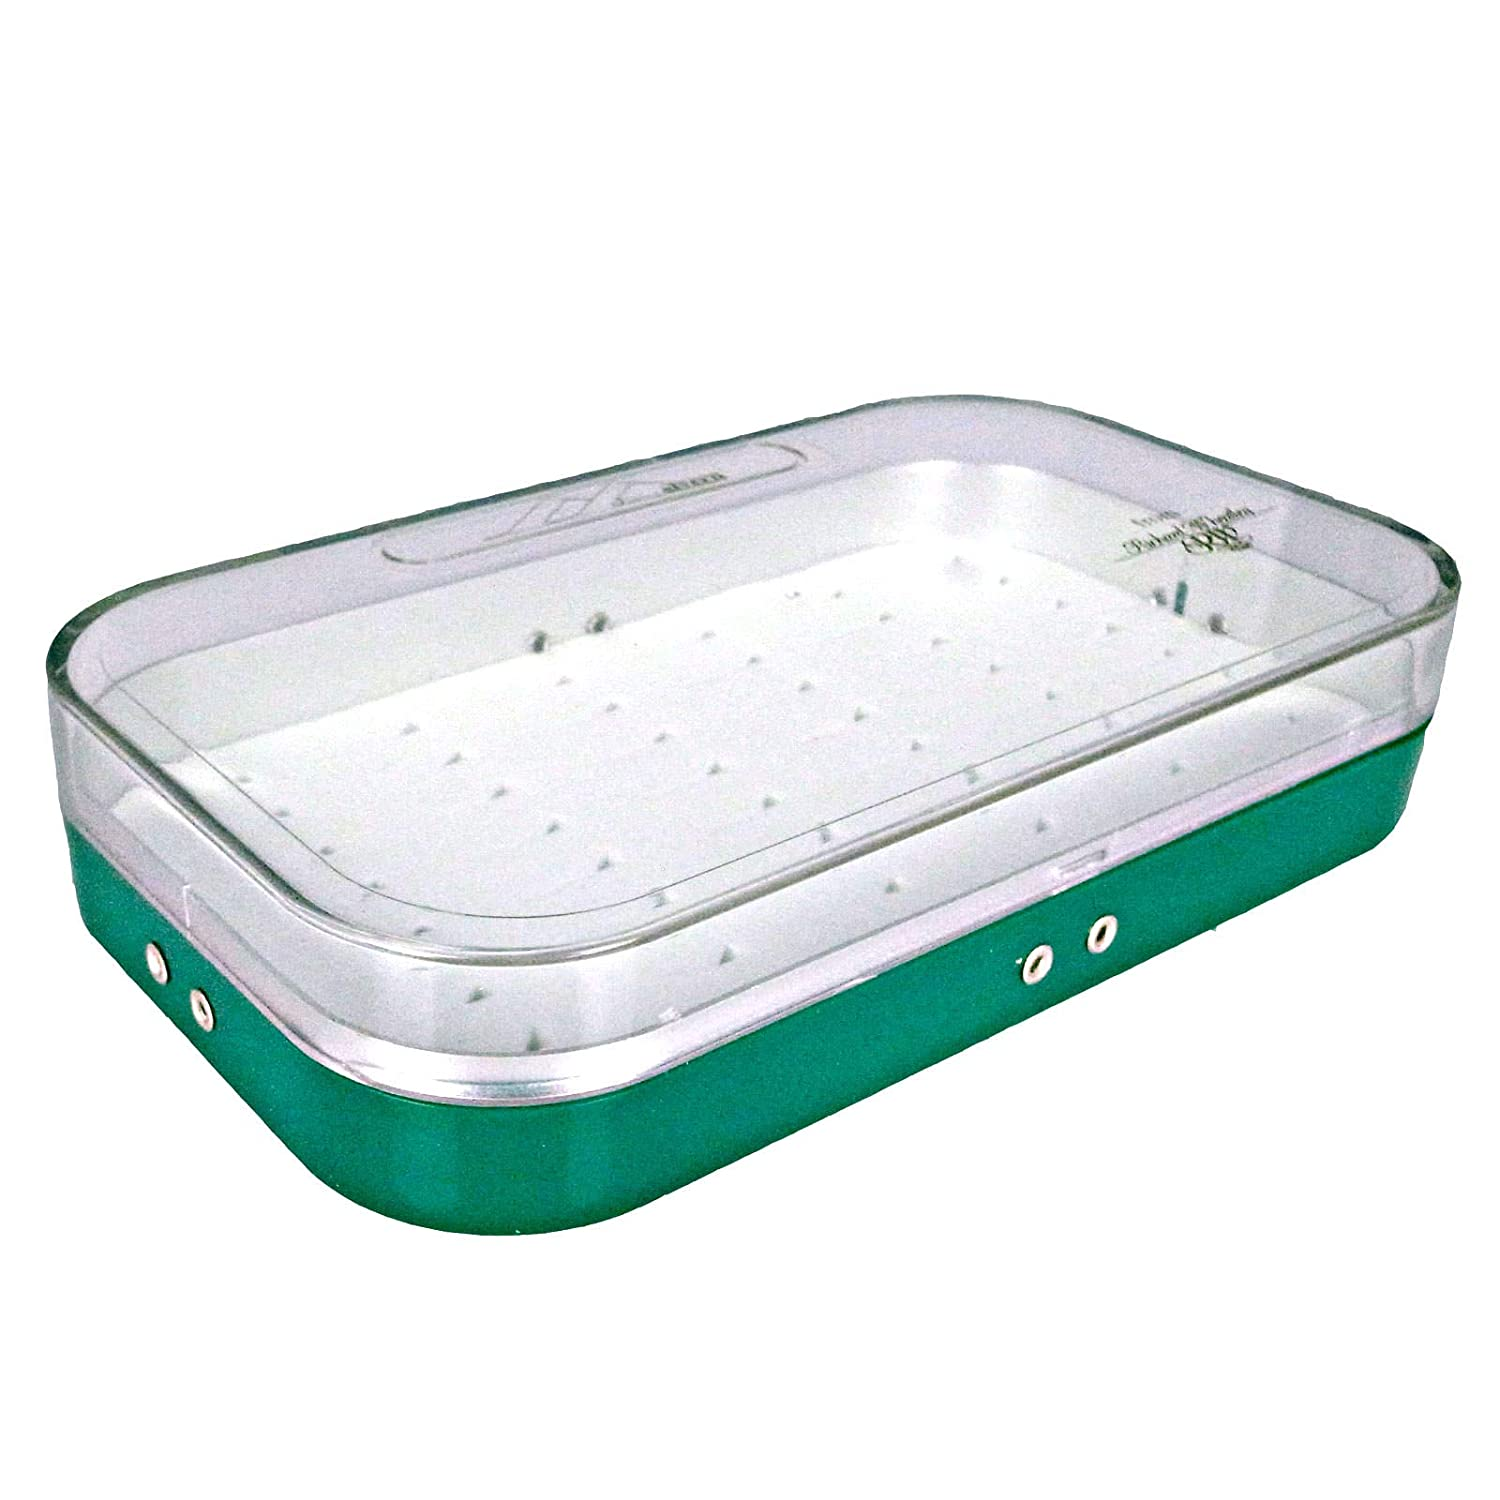 Richard Wheatley Malvern Plastic Fly Box Green//Clear Lid